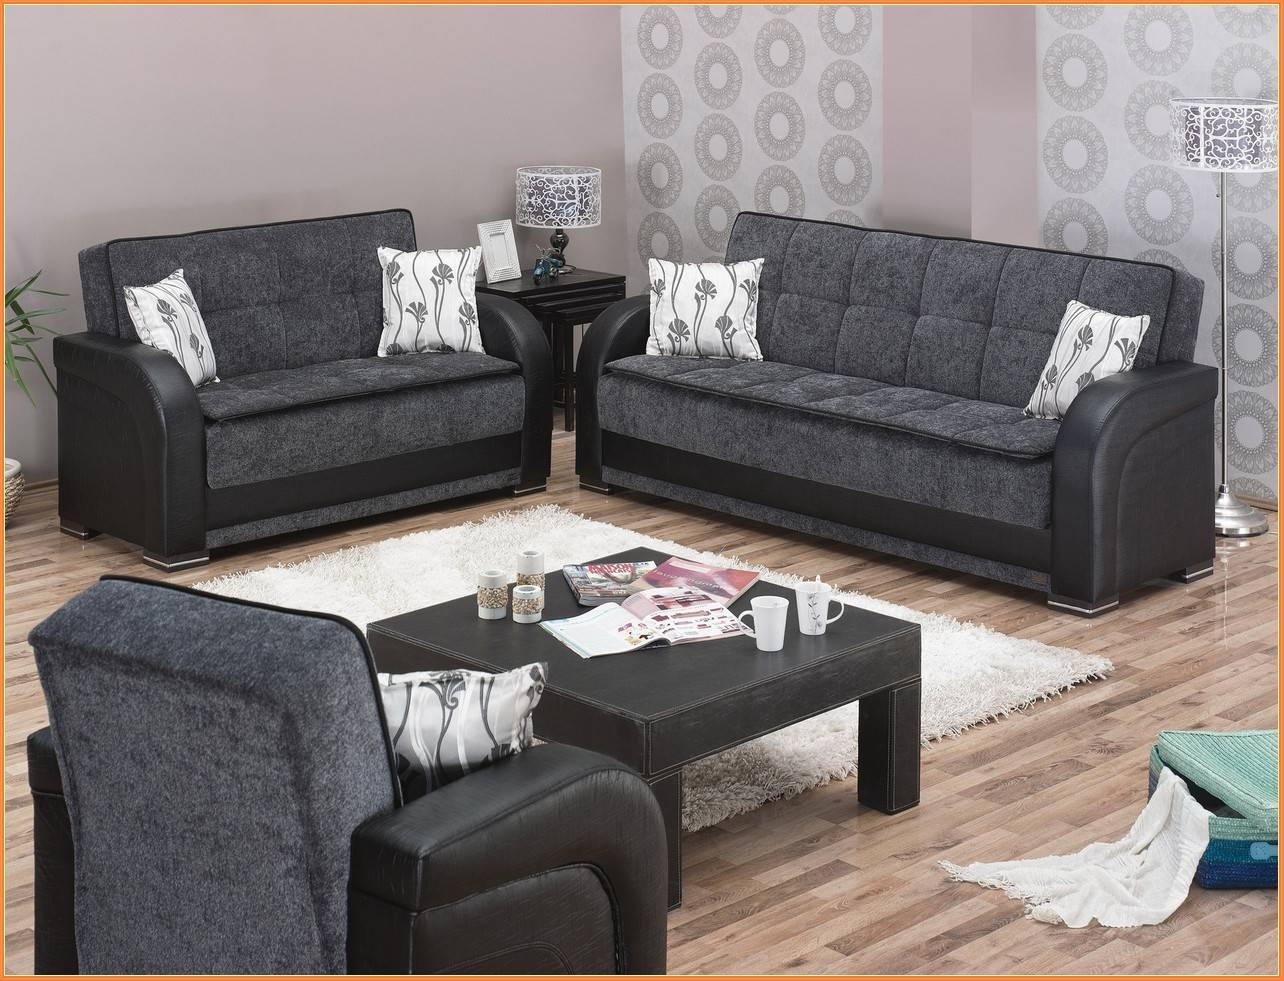 Good Sectional Sofas Okc 87 With Additional Contemporary Sofa In Okc Sectional Sofas (View 8 of 10)